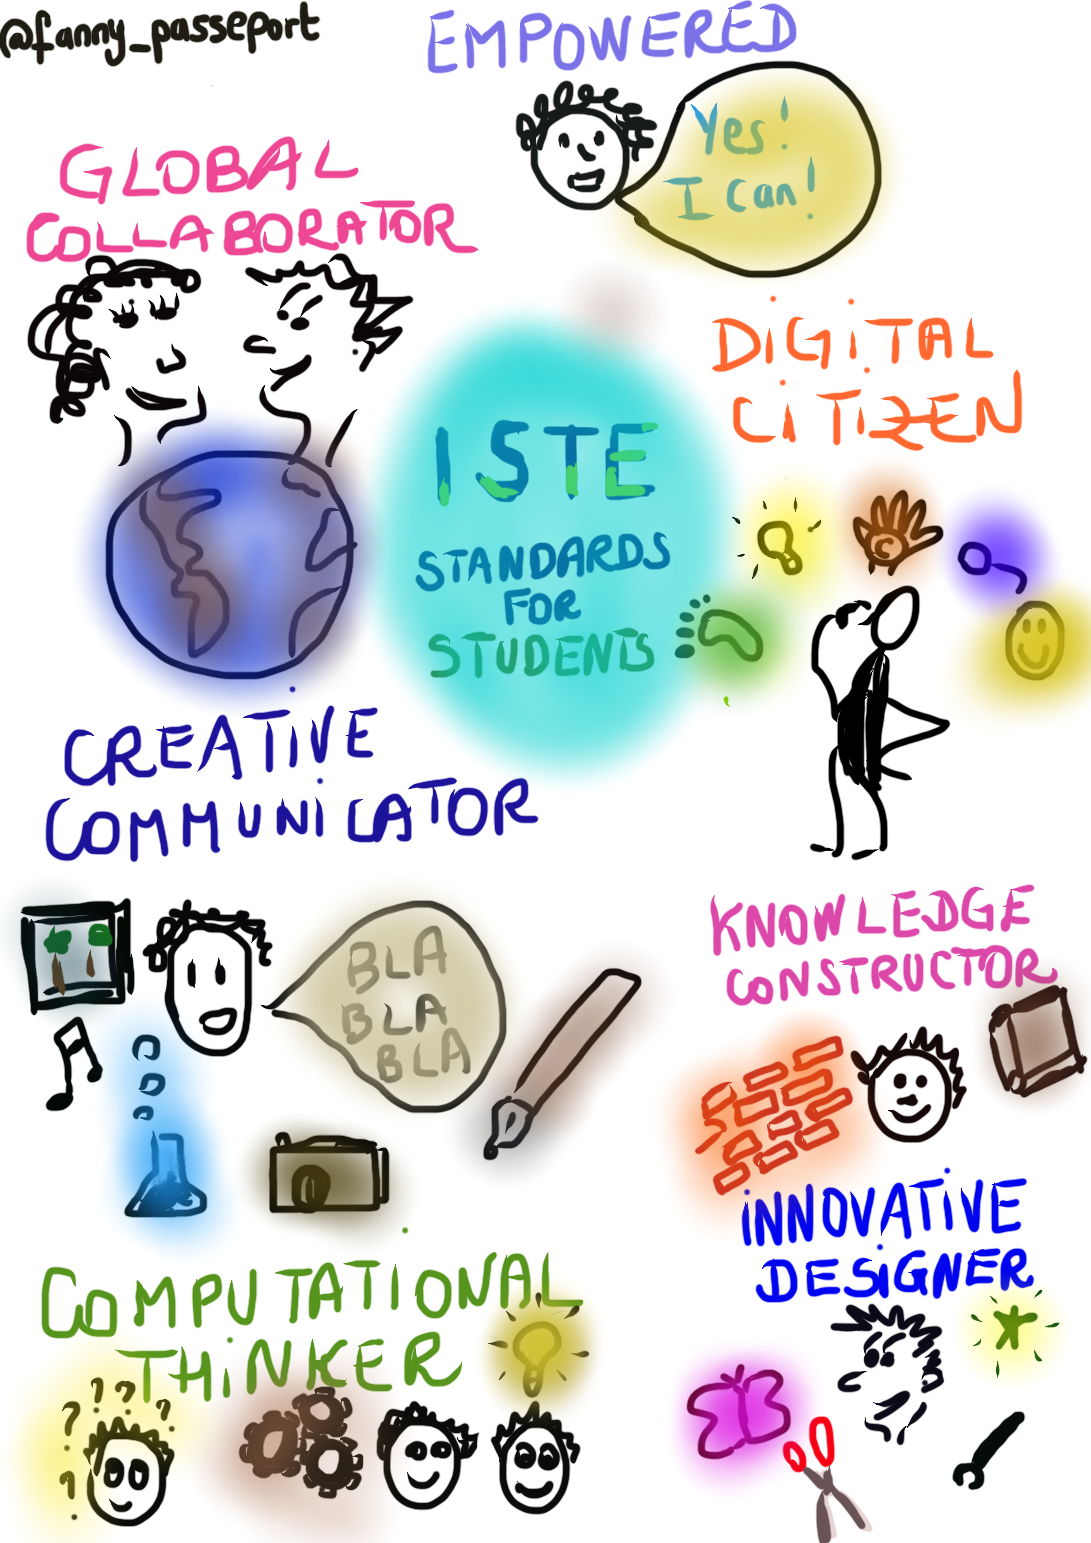 ISTE_Standards_for_Students.png